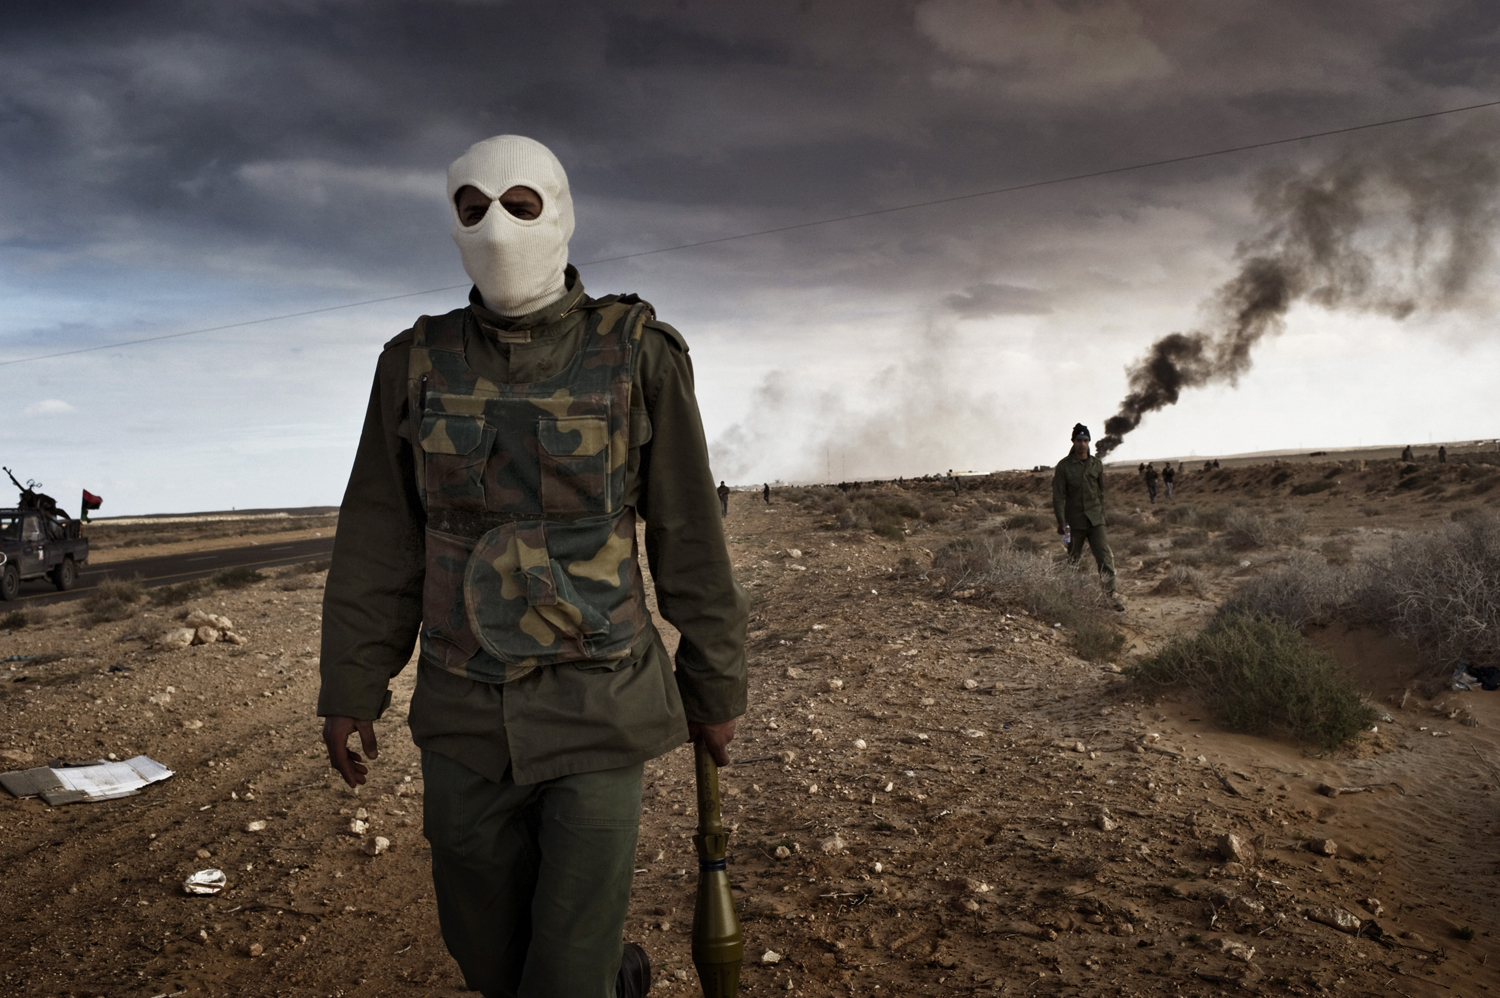 Libyan rebels advance during a battle with government troops as an oil facility burns, March 9, 2011.